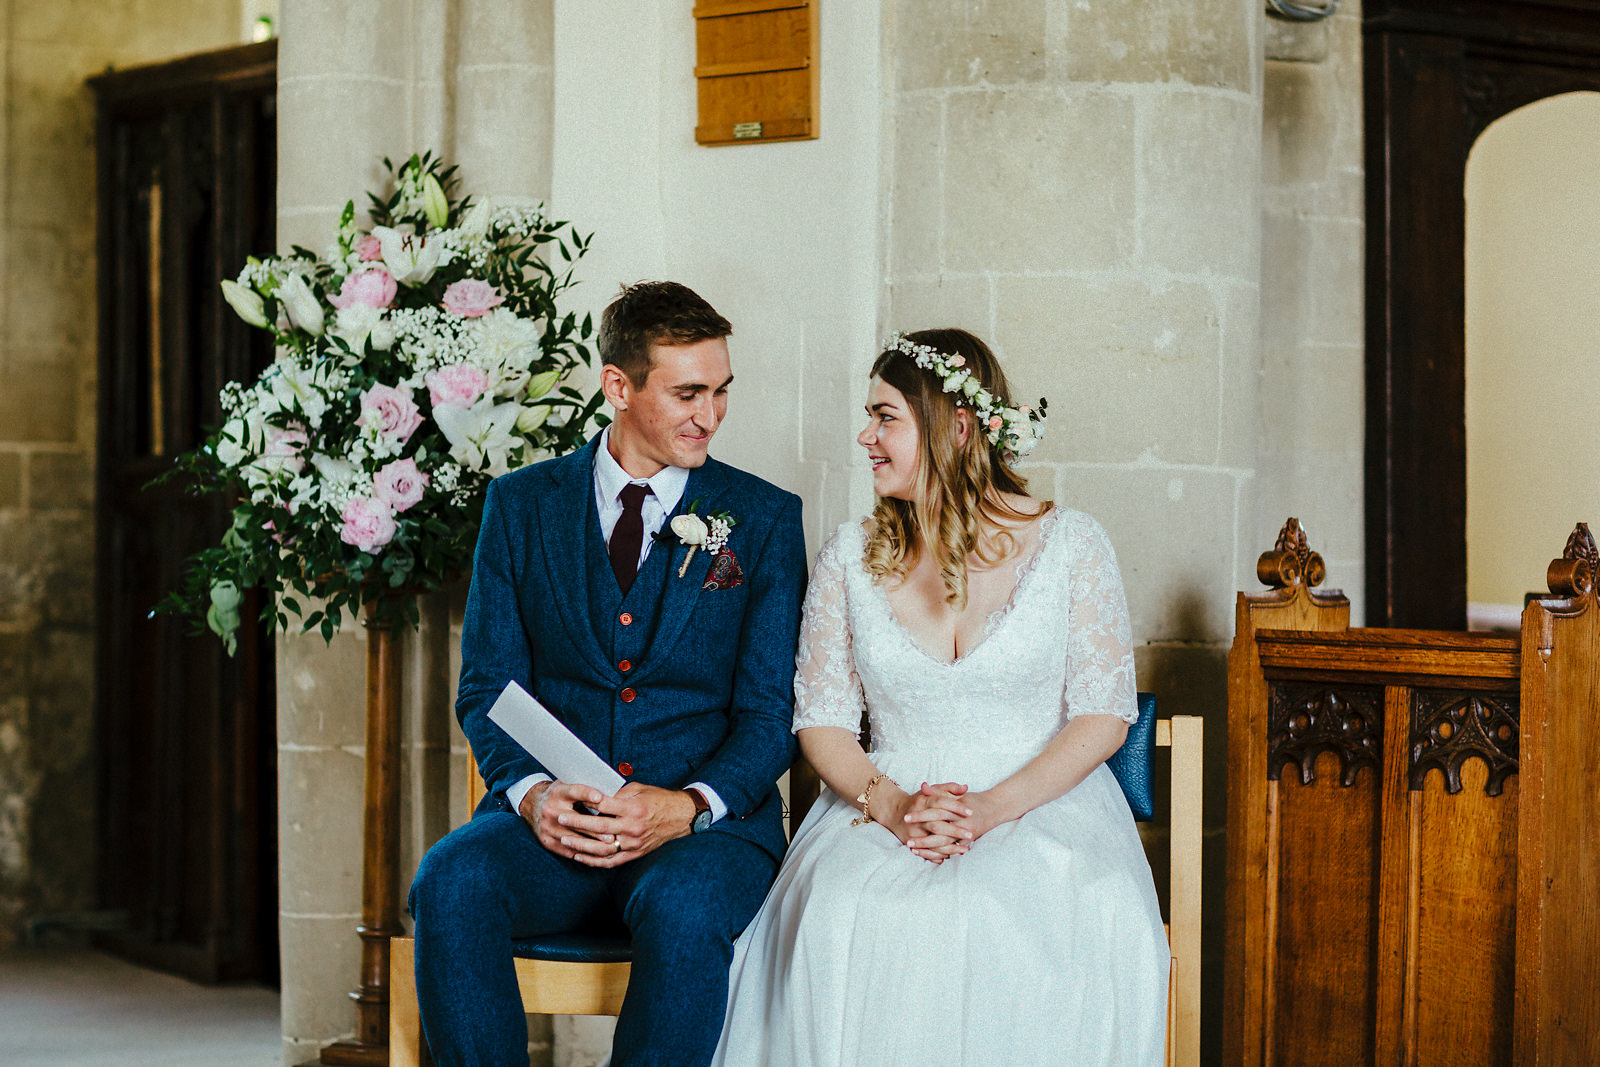 Haddenham St Mary's church ceremony